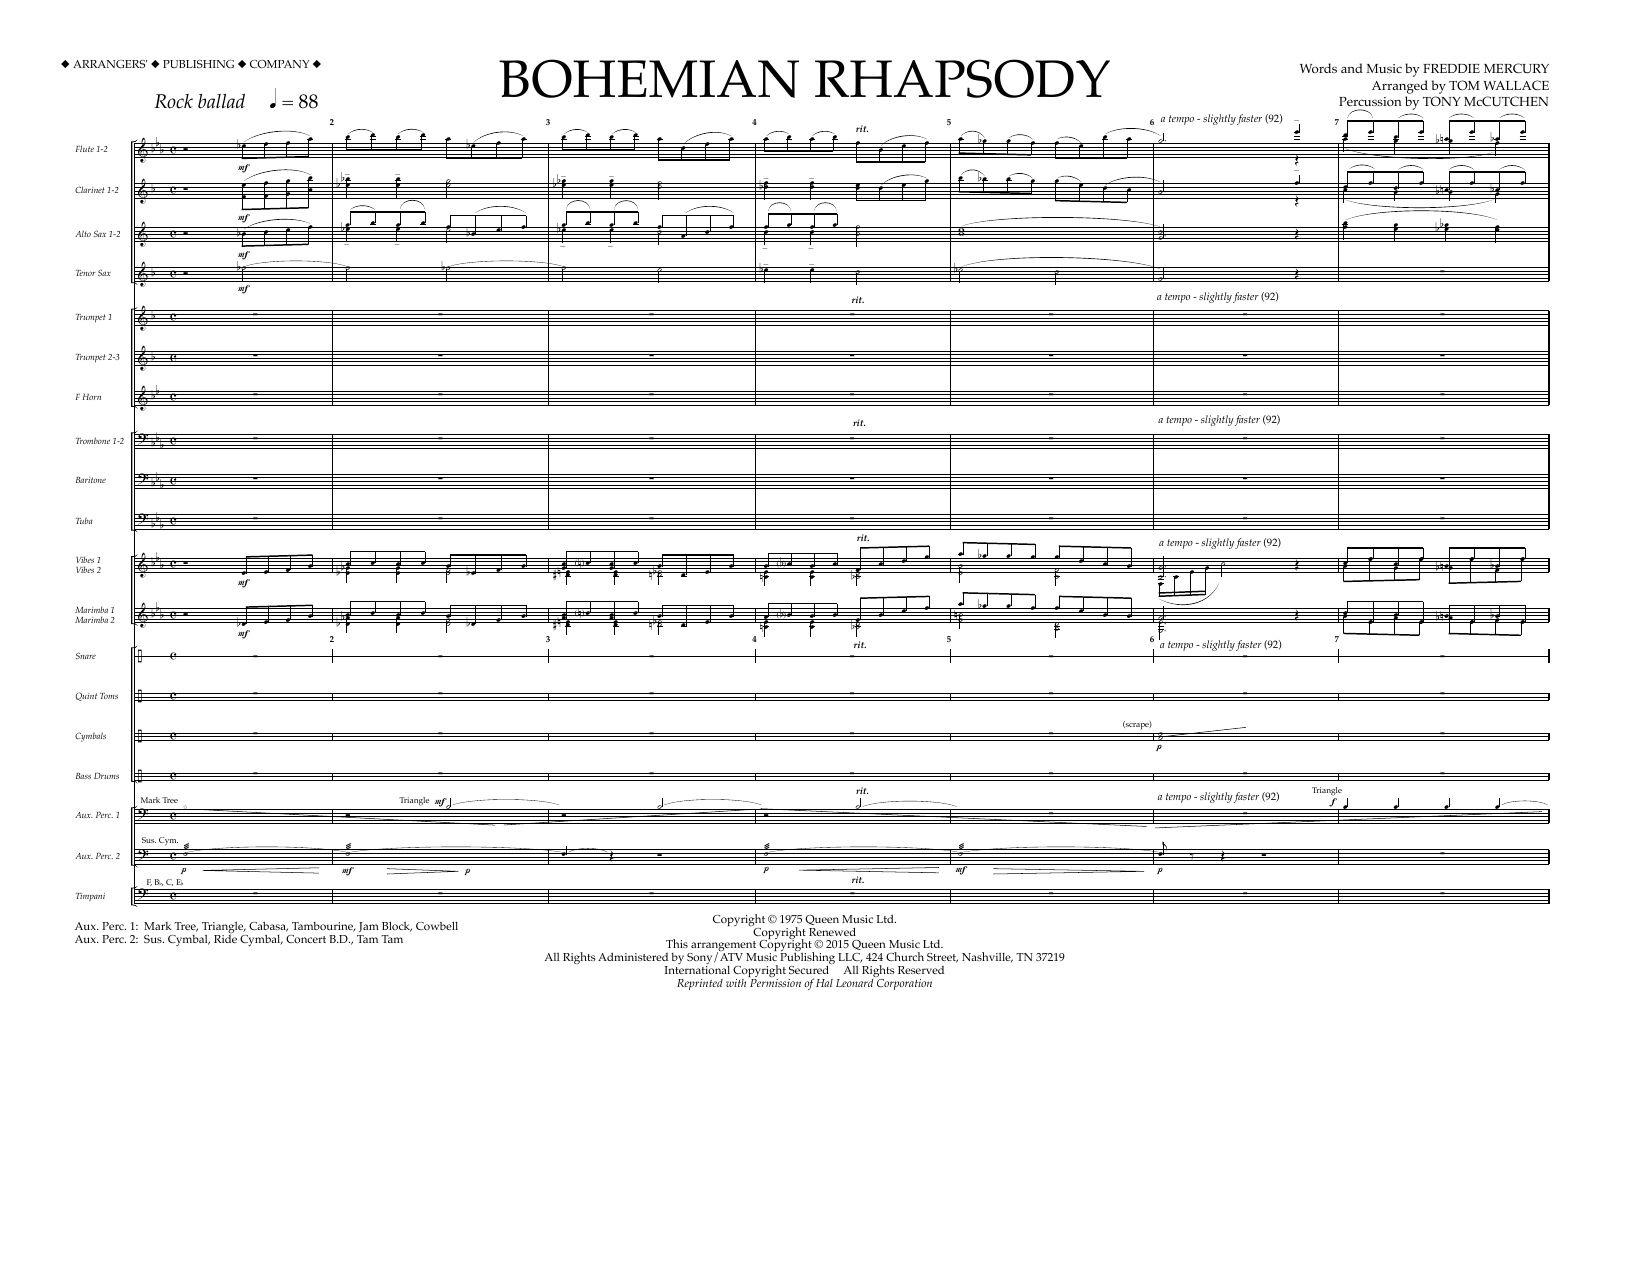 Bohemian Rhapsody (COMPLETE) sheet music for marching band by Tom Wallace, Freddie Mercury and Queen. Score Image Preview.